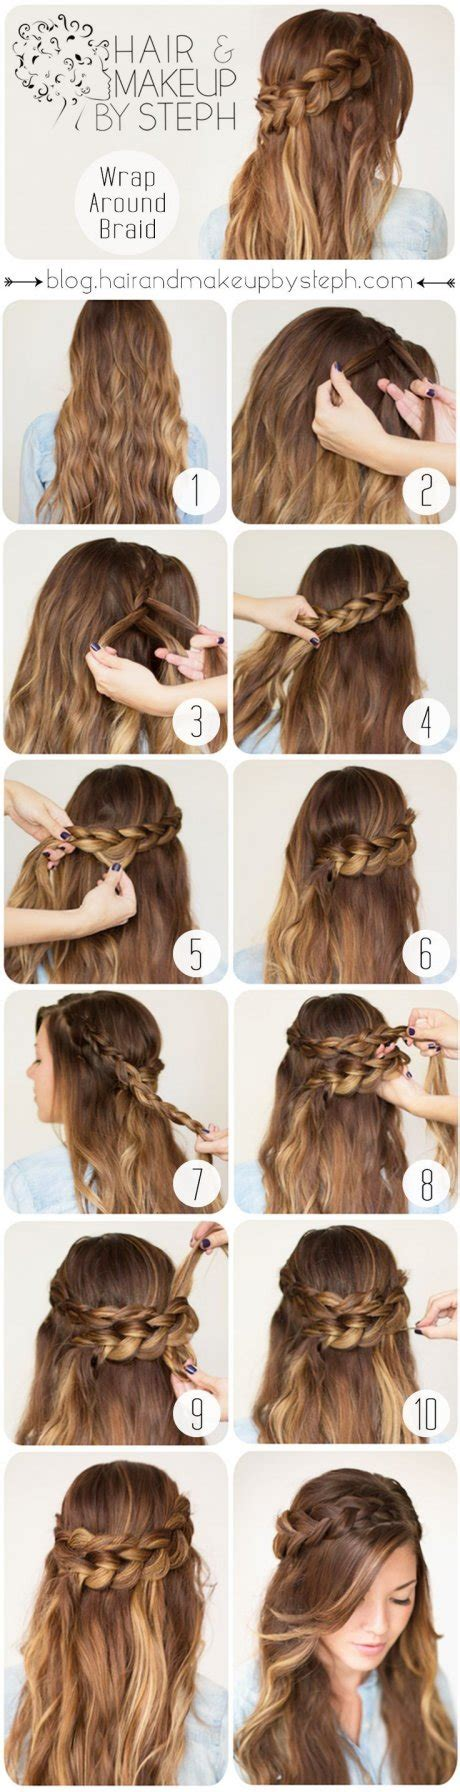 simple step by step winter hairstyle tutorials for tutoriales de trenzas actitudfem